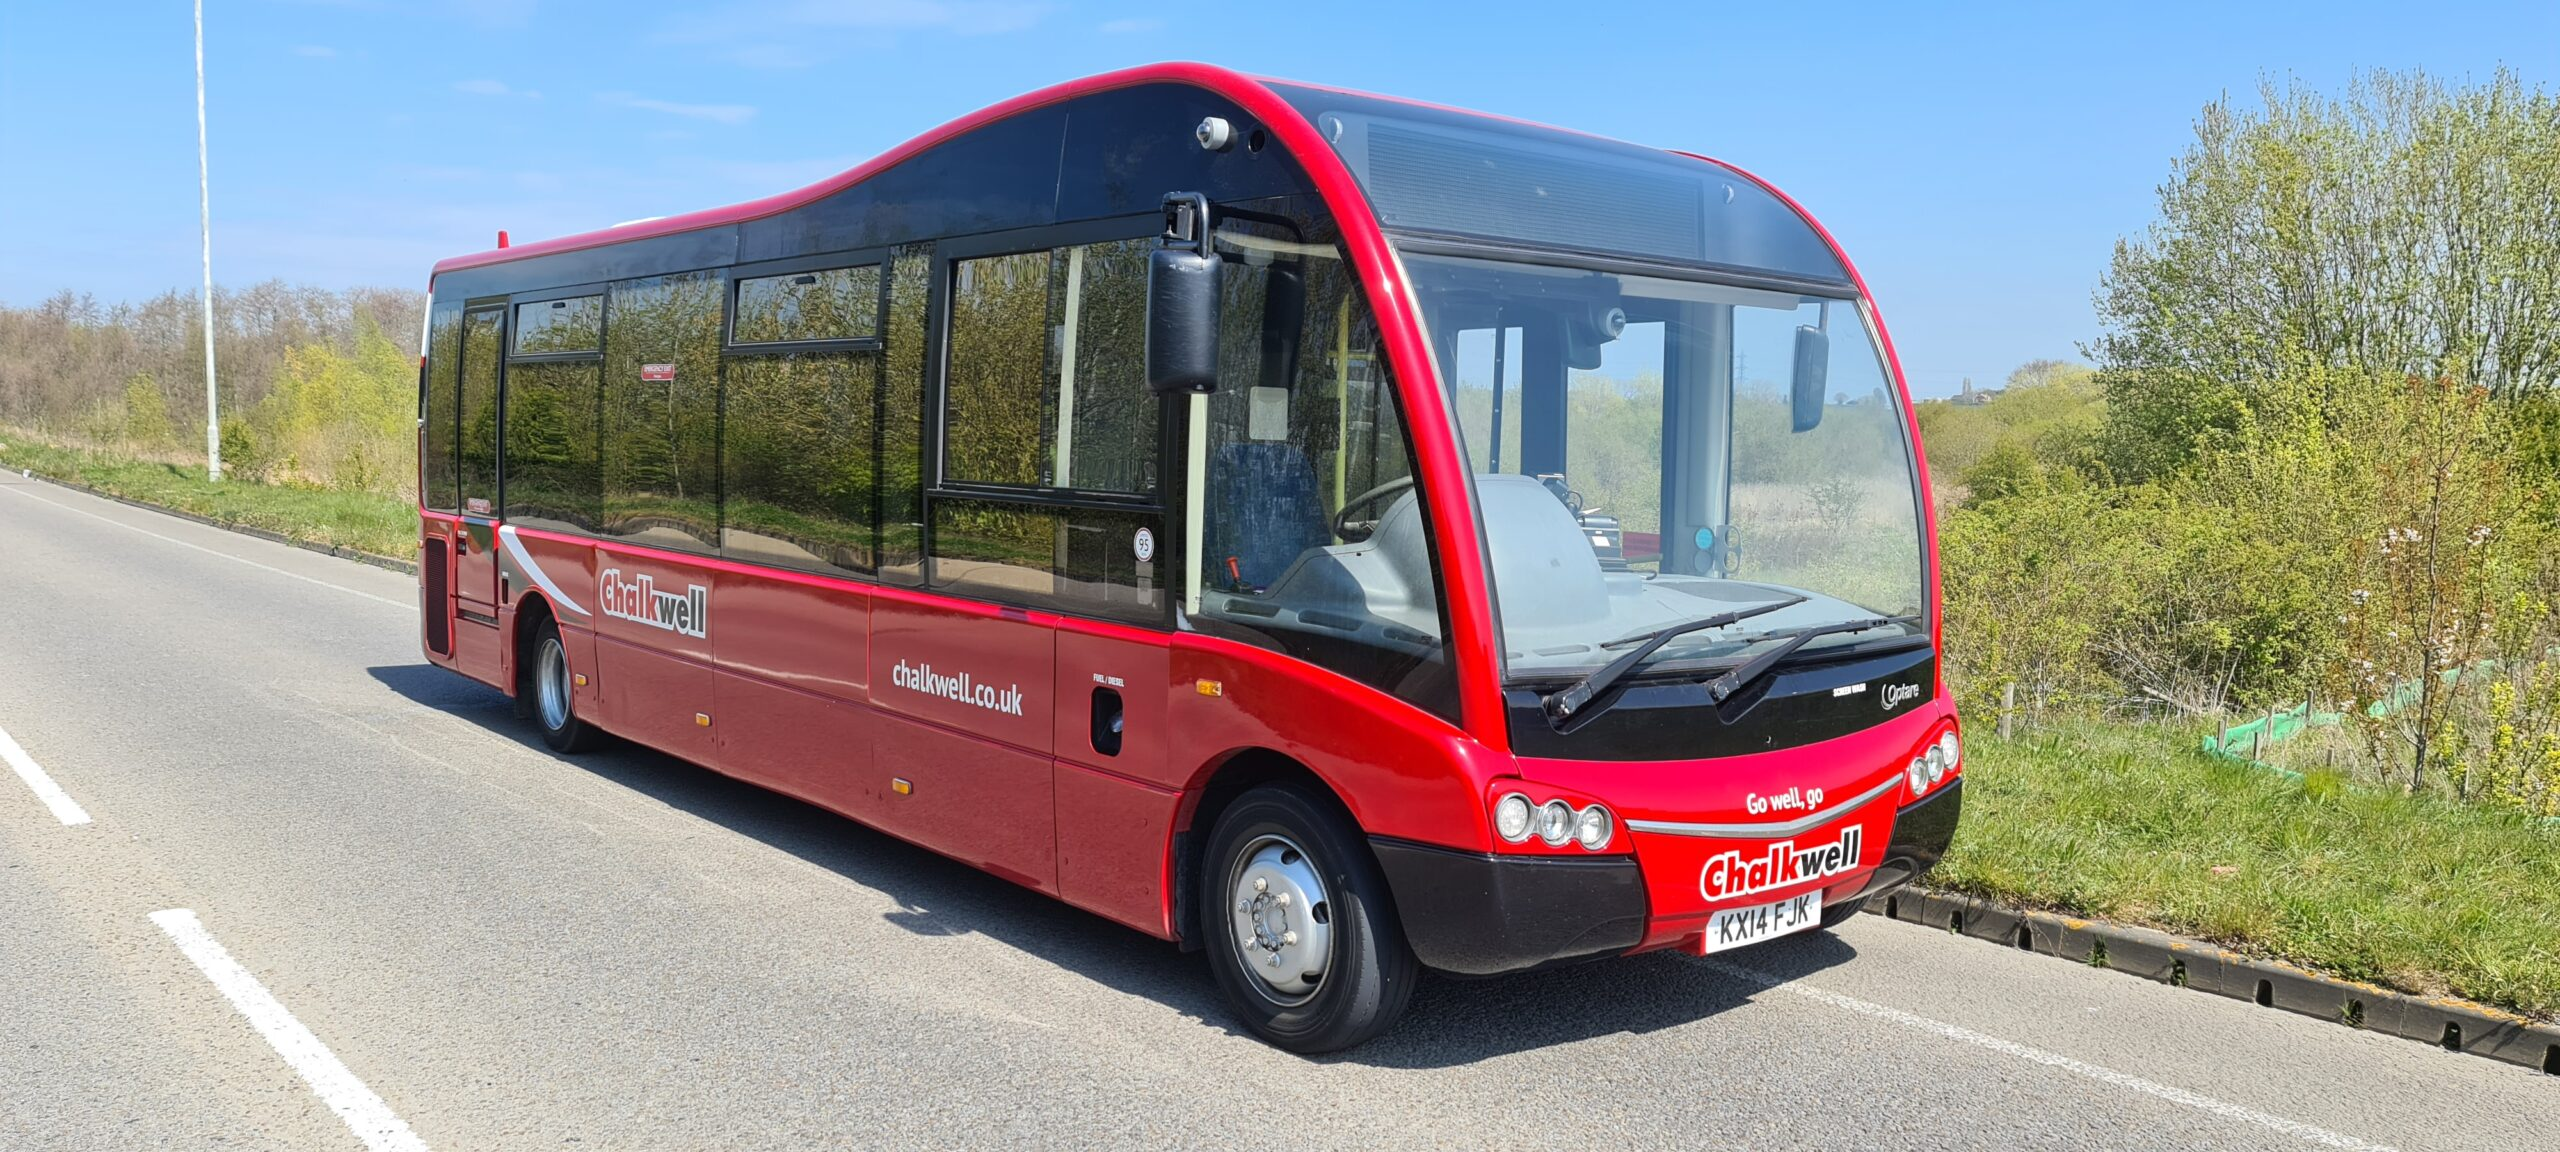 Chalkwell to Take Over 360/361 Bus Service